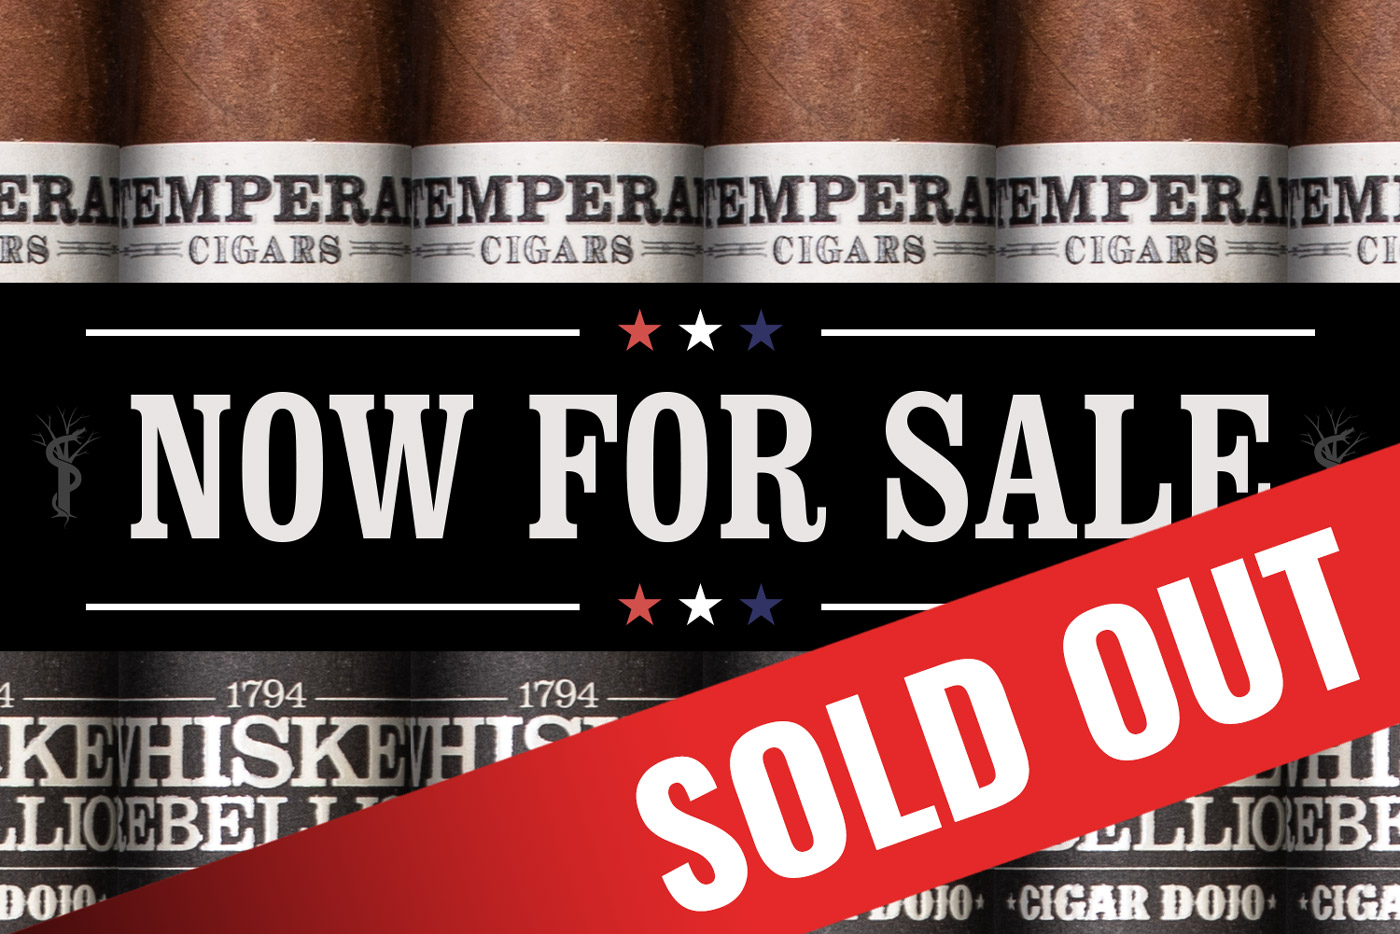 RoMa Craft Whiskey Rebellion 1794 Pennsatucky cigar sold out